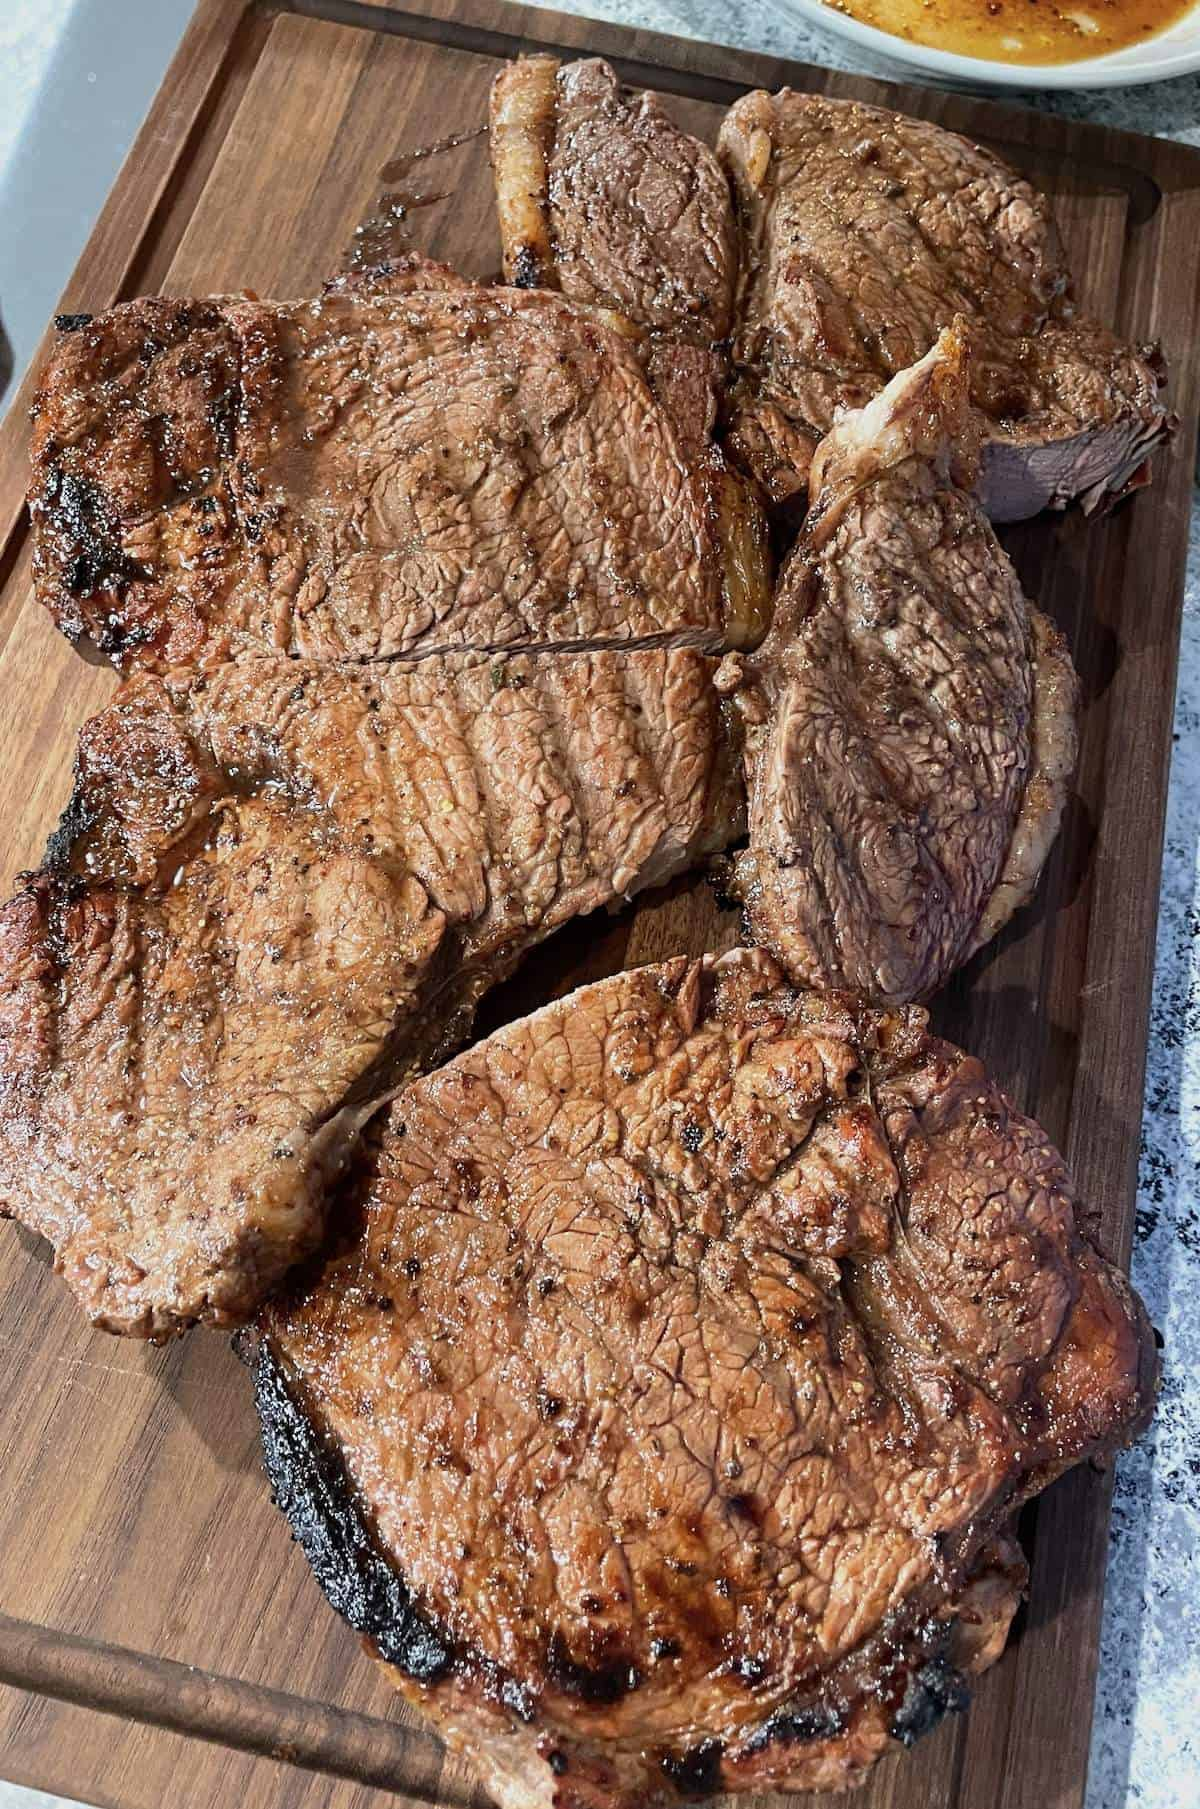 Two steaks on a wooden cutting board cut into large pieces.